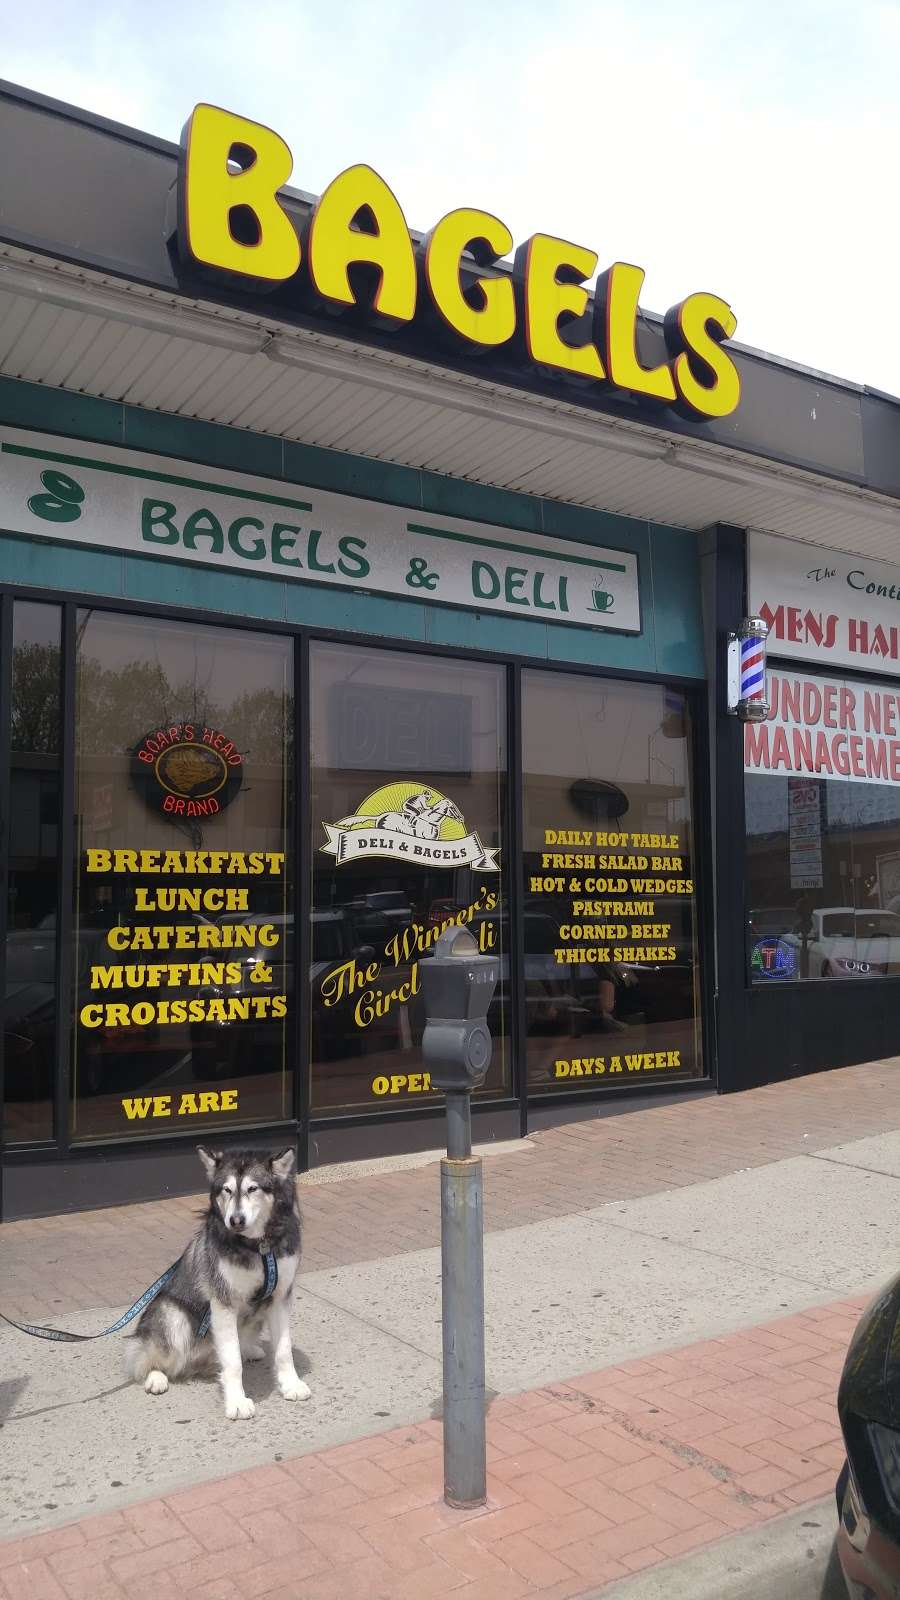 Winners Circle Bagels and Deli - bakery    Photo 1 of 2   Address: 847 Bronx River Rd, Bronxville, NY 10708, USA   Phone: (914) 237-4666